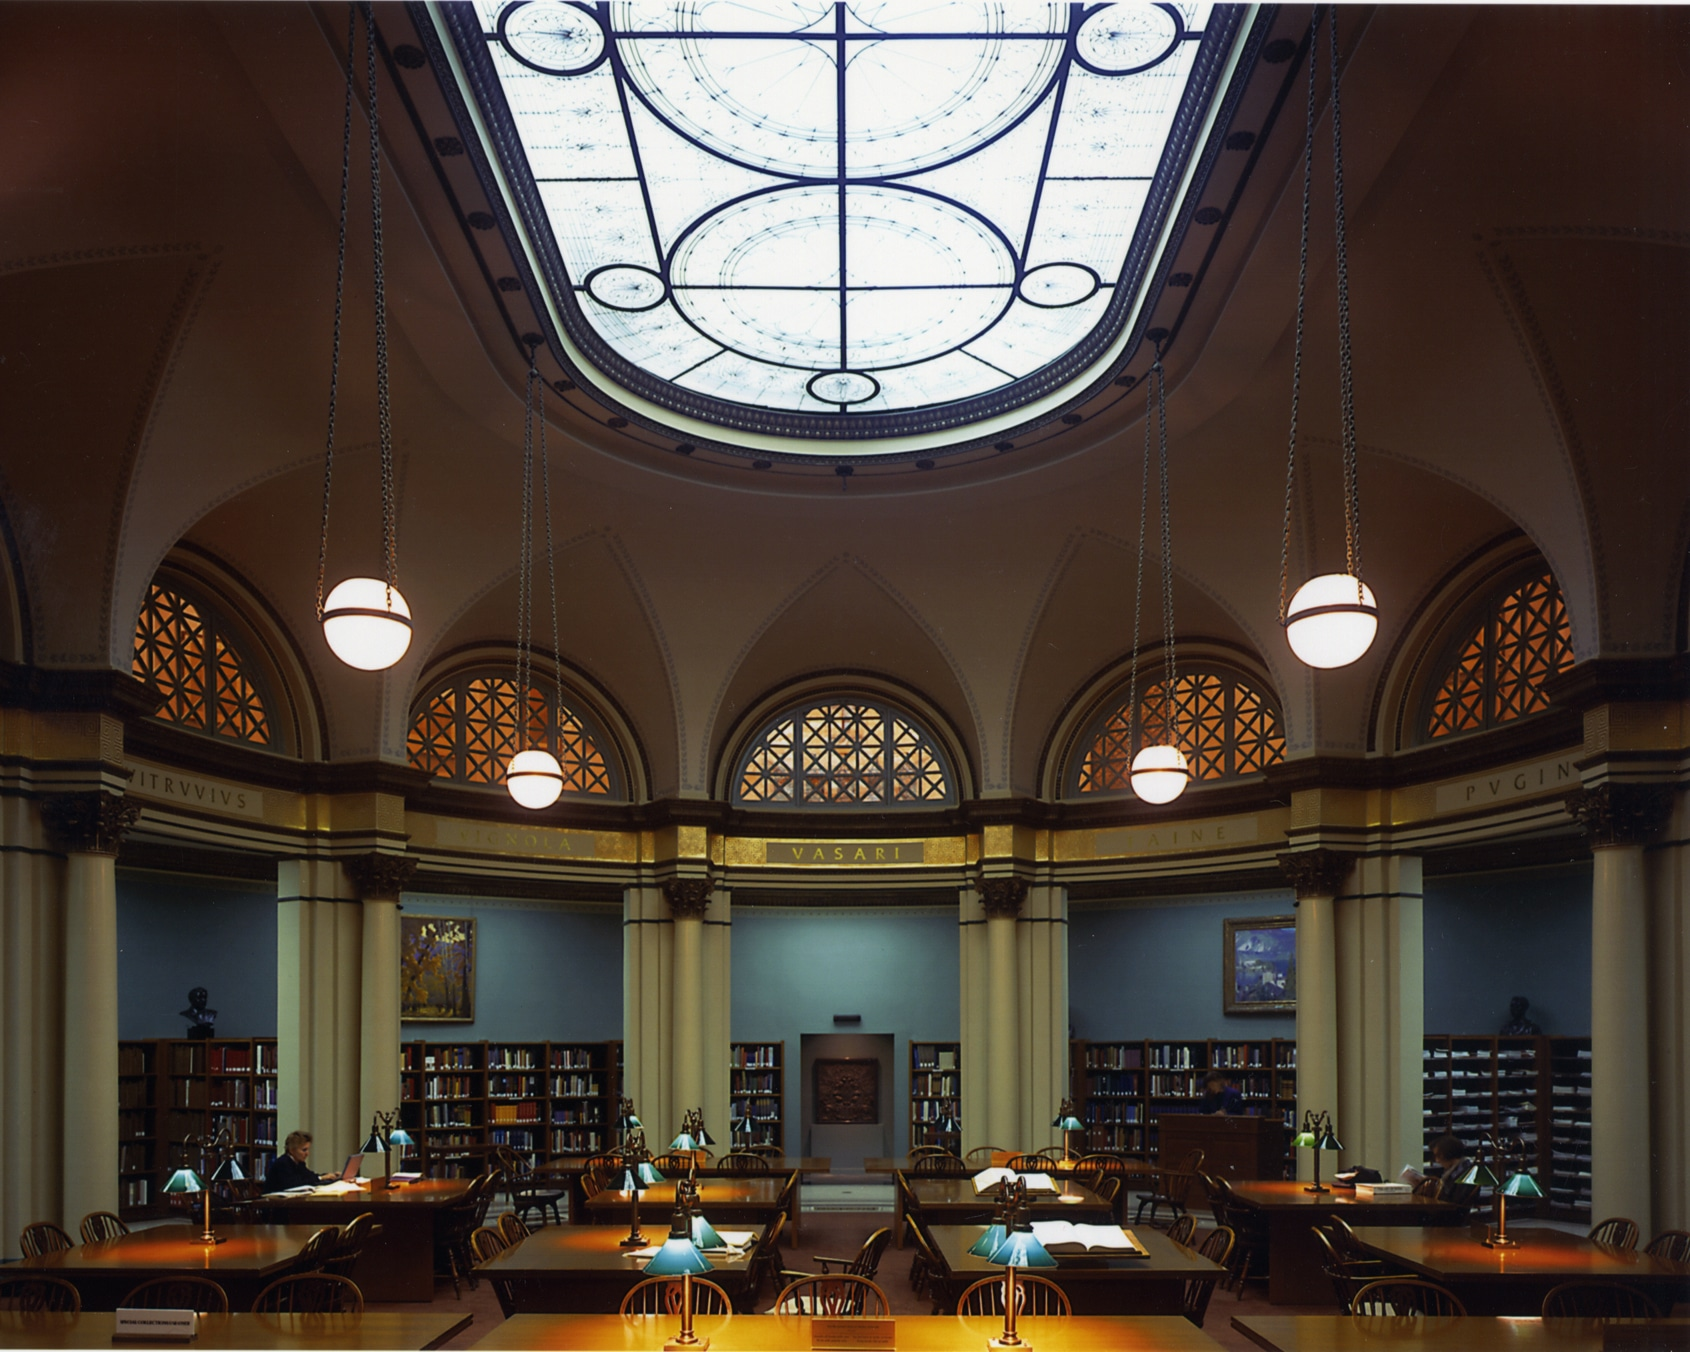 The Art Institute Of Chicagou0027s Historic Reading Room Was Designed In 1901  By The Boston Firm Of Shepley, Rutan And Coolidge, Architects Of The  Original Art ...